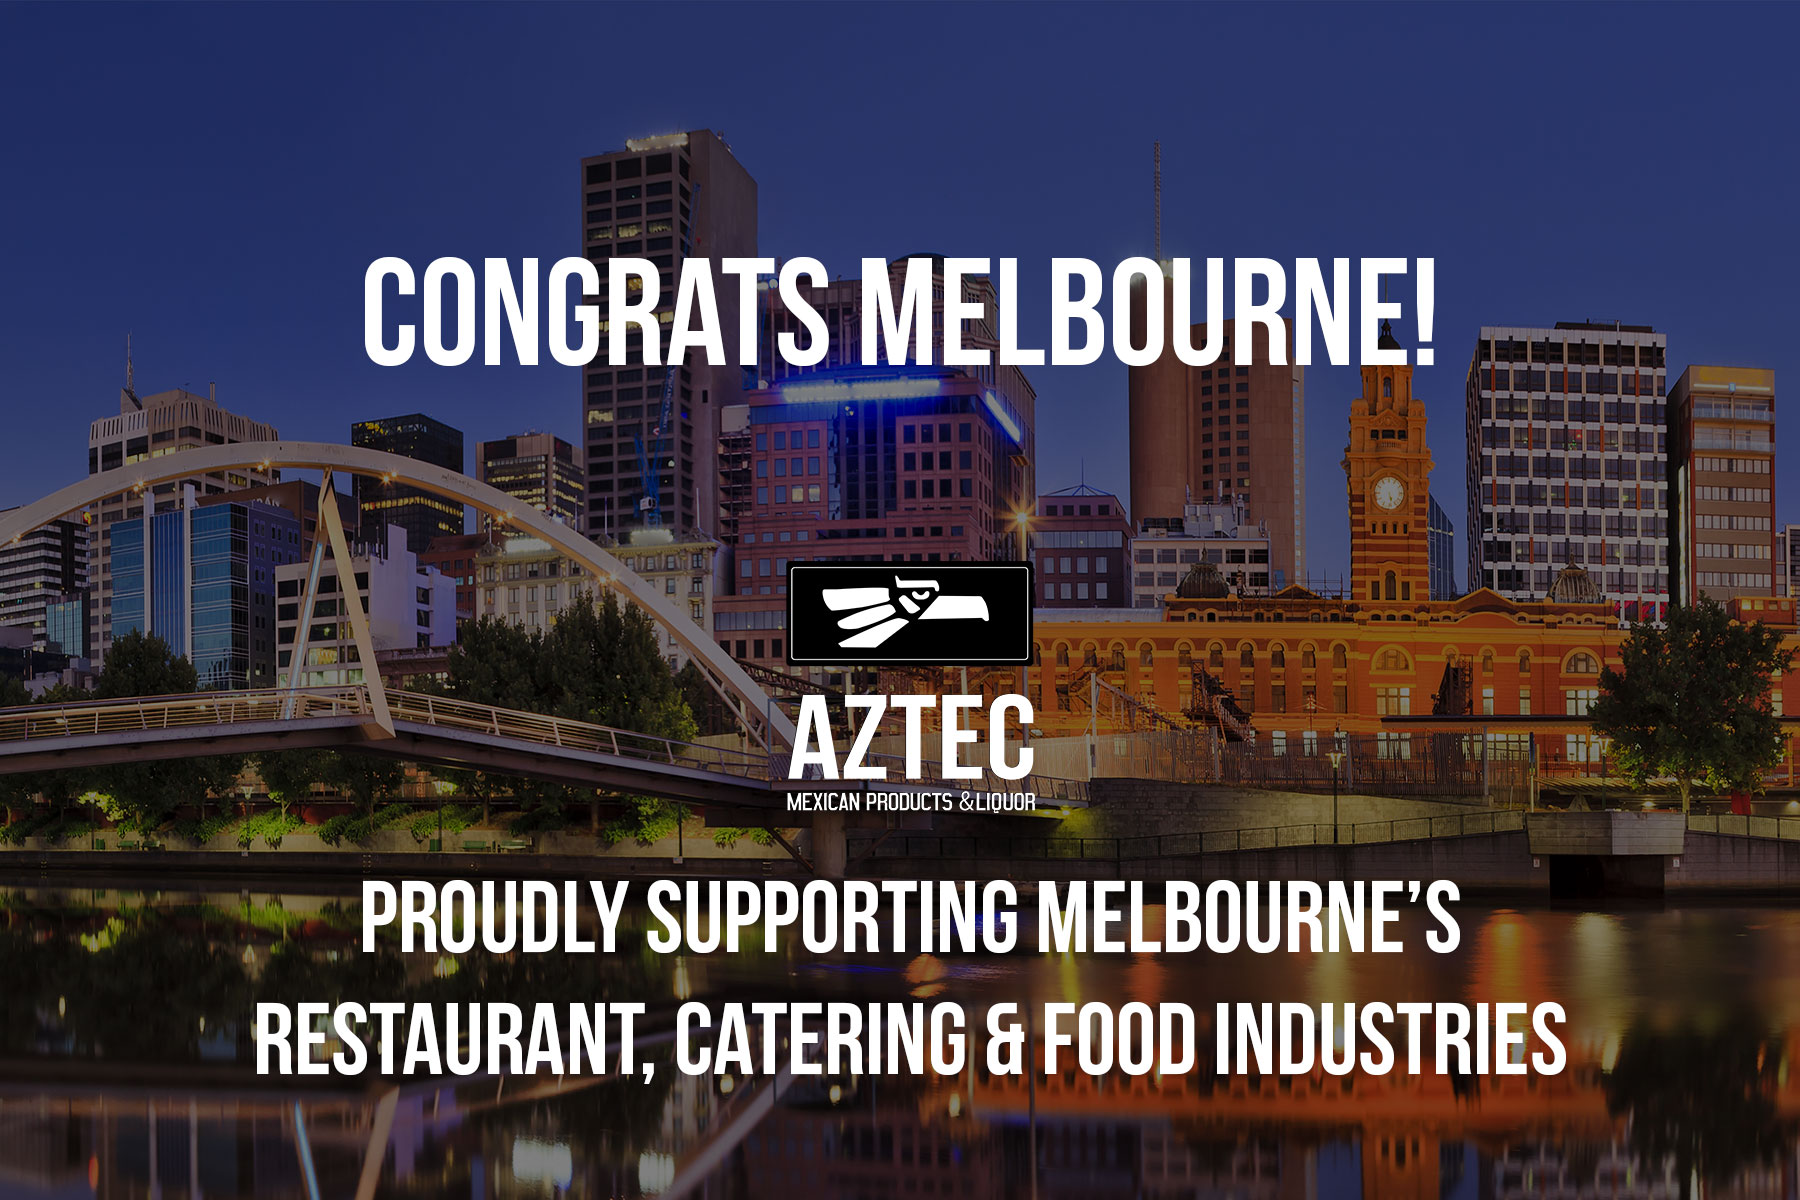 Aztec Mexican Products and Liquor - Congrats Melbourne - Supporting Melbourne's Restaurant, Catering and Food Industries